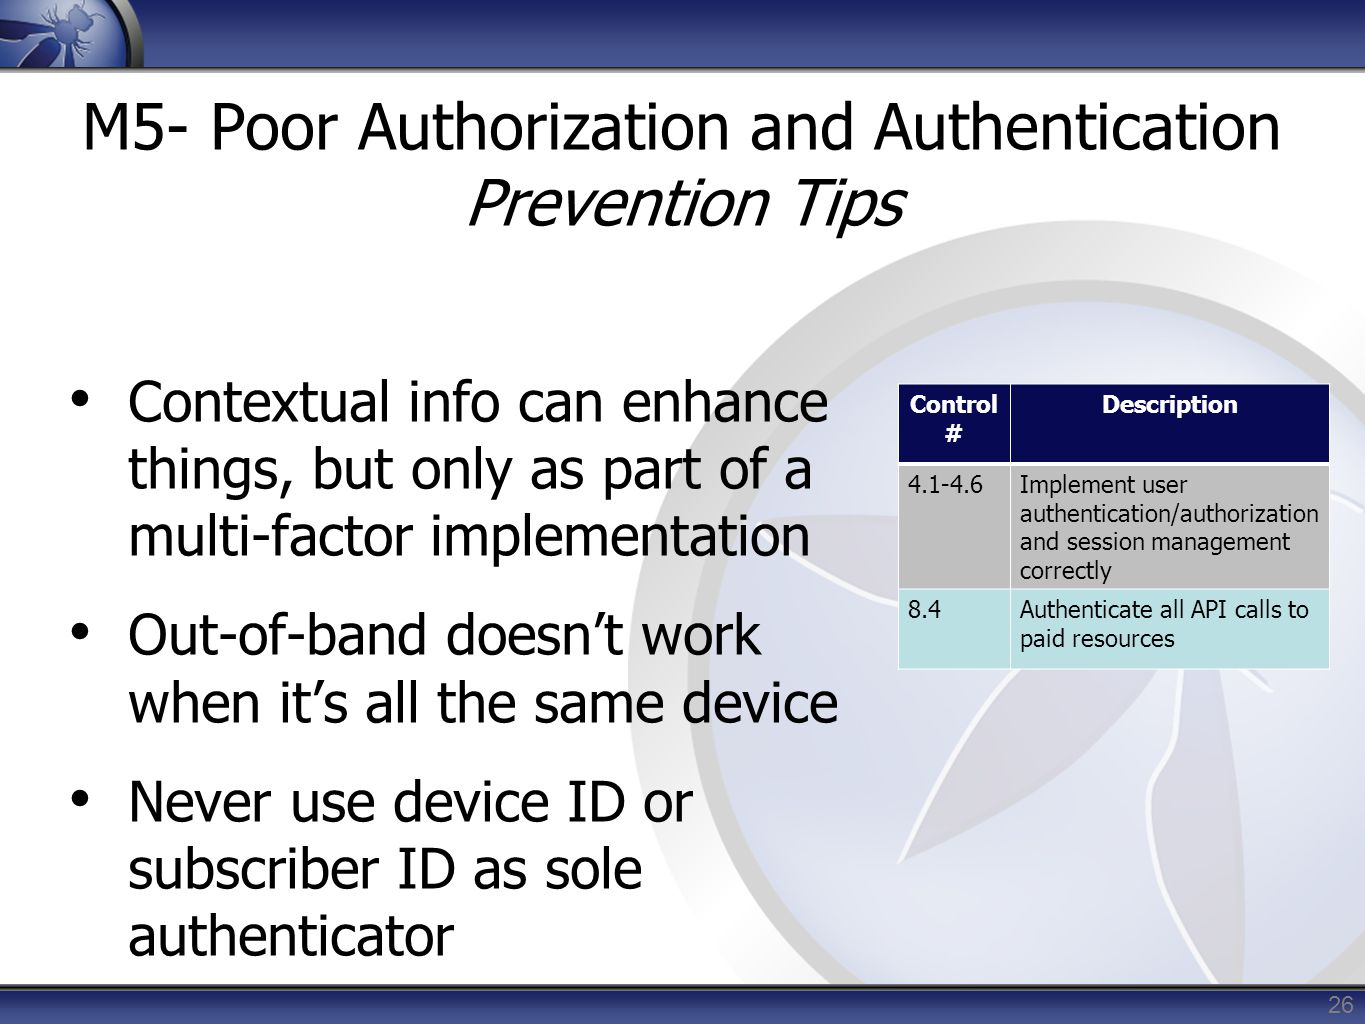 M5- Poor Authorization and Authentication Prevention Tips